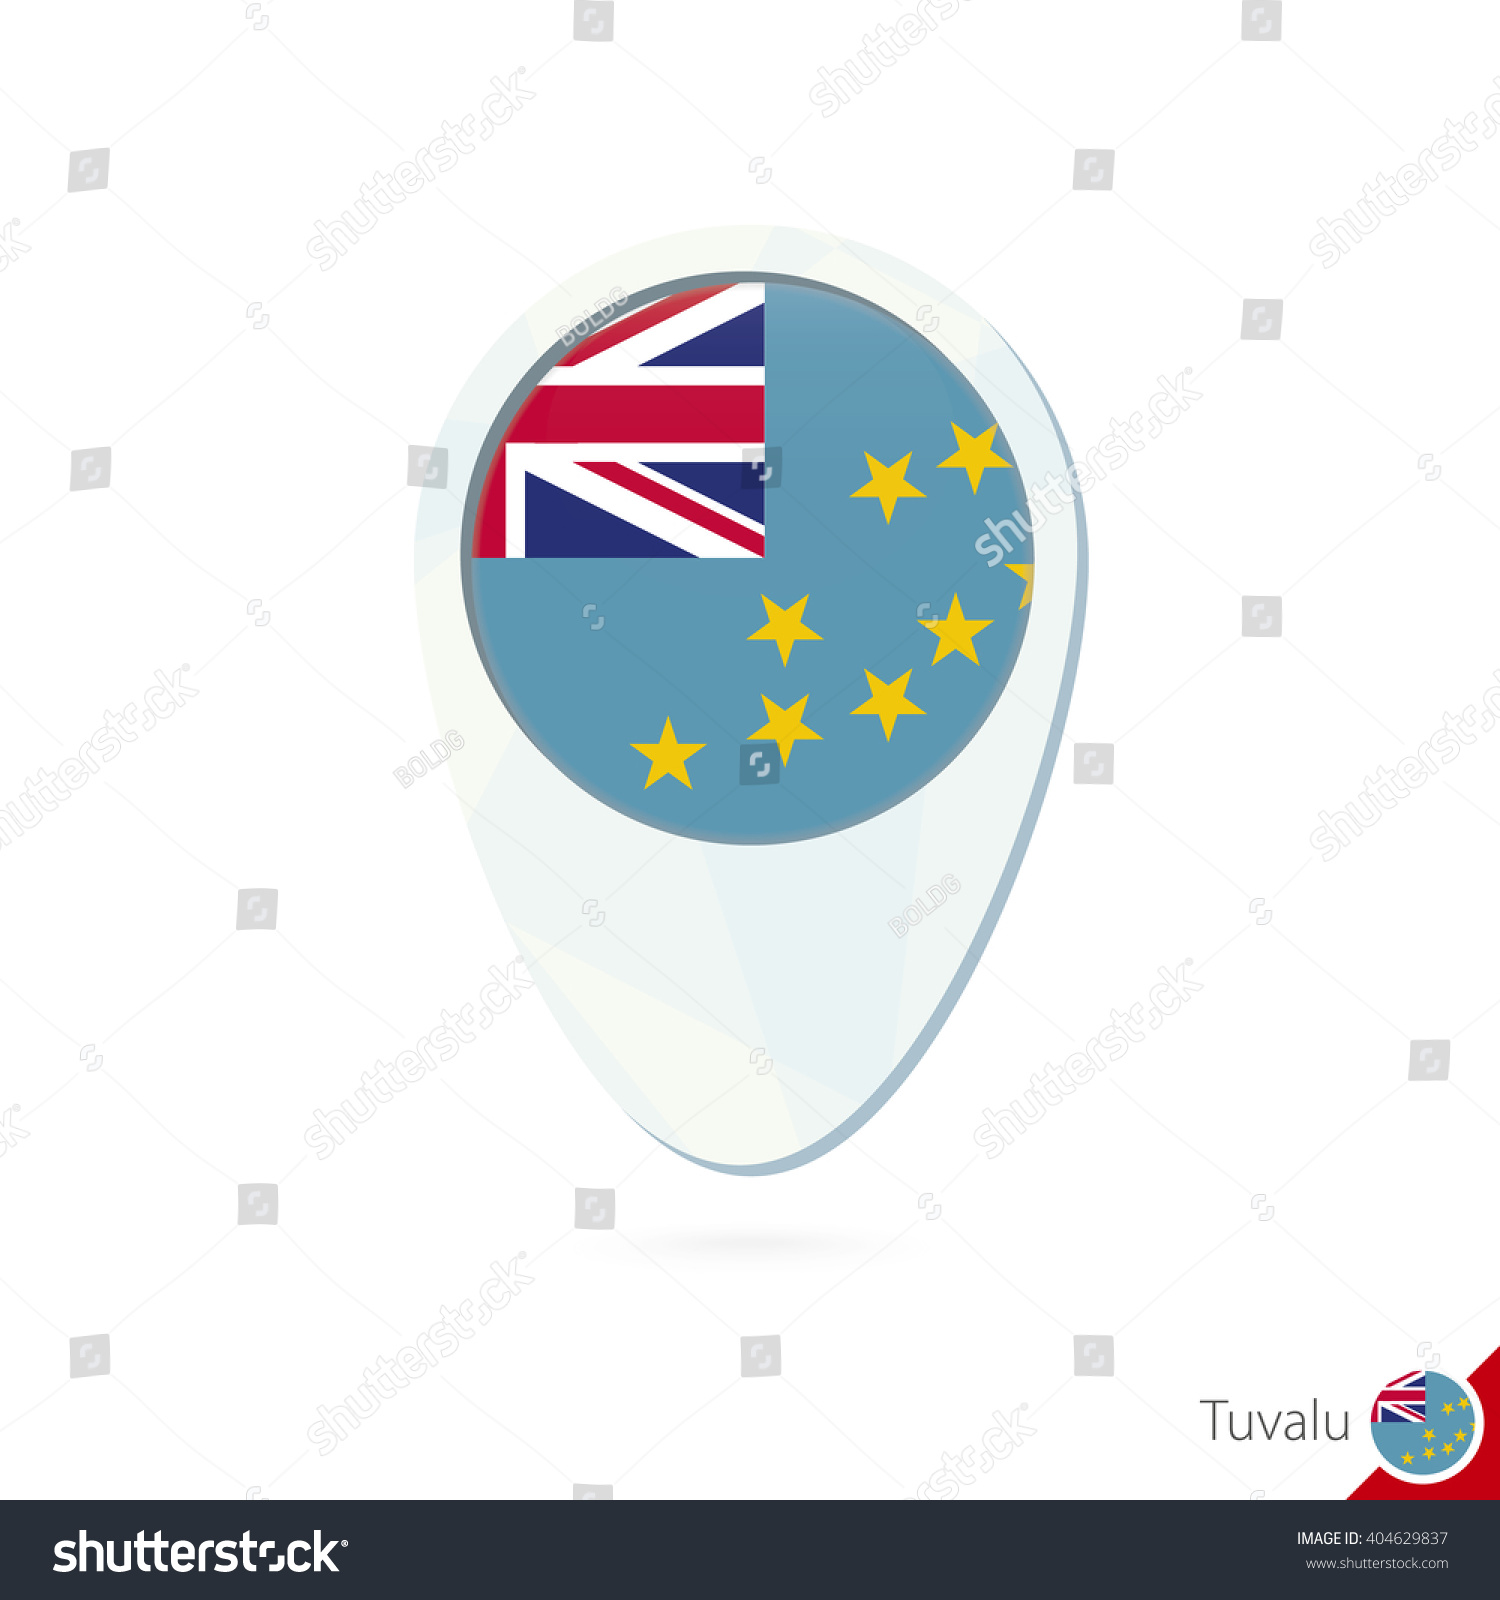 Tuvalu Flag Location Map Pin Icon Stock Illustration 404629837